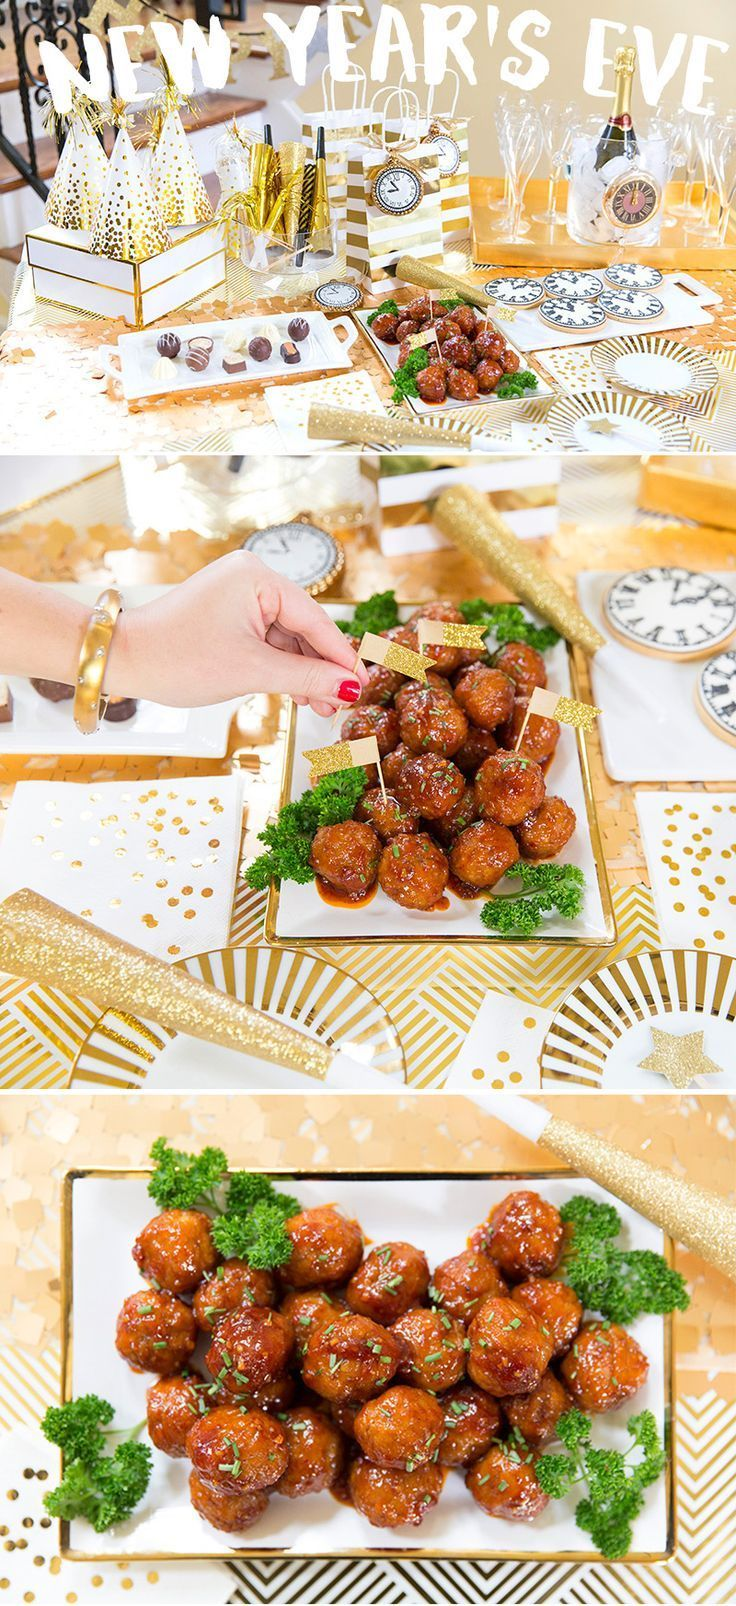 Host a stylish new years eve party recipe for sweet n spicy host a stylish new years eve party recipe for sweet n spicy meatballs forumfinder Choice Image